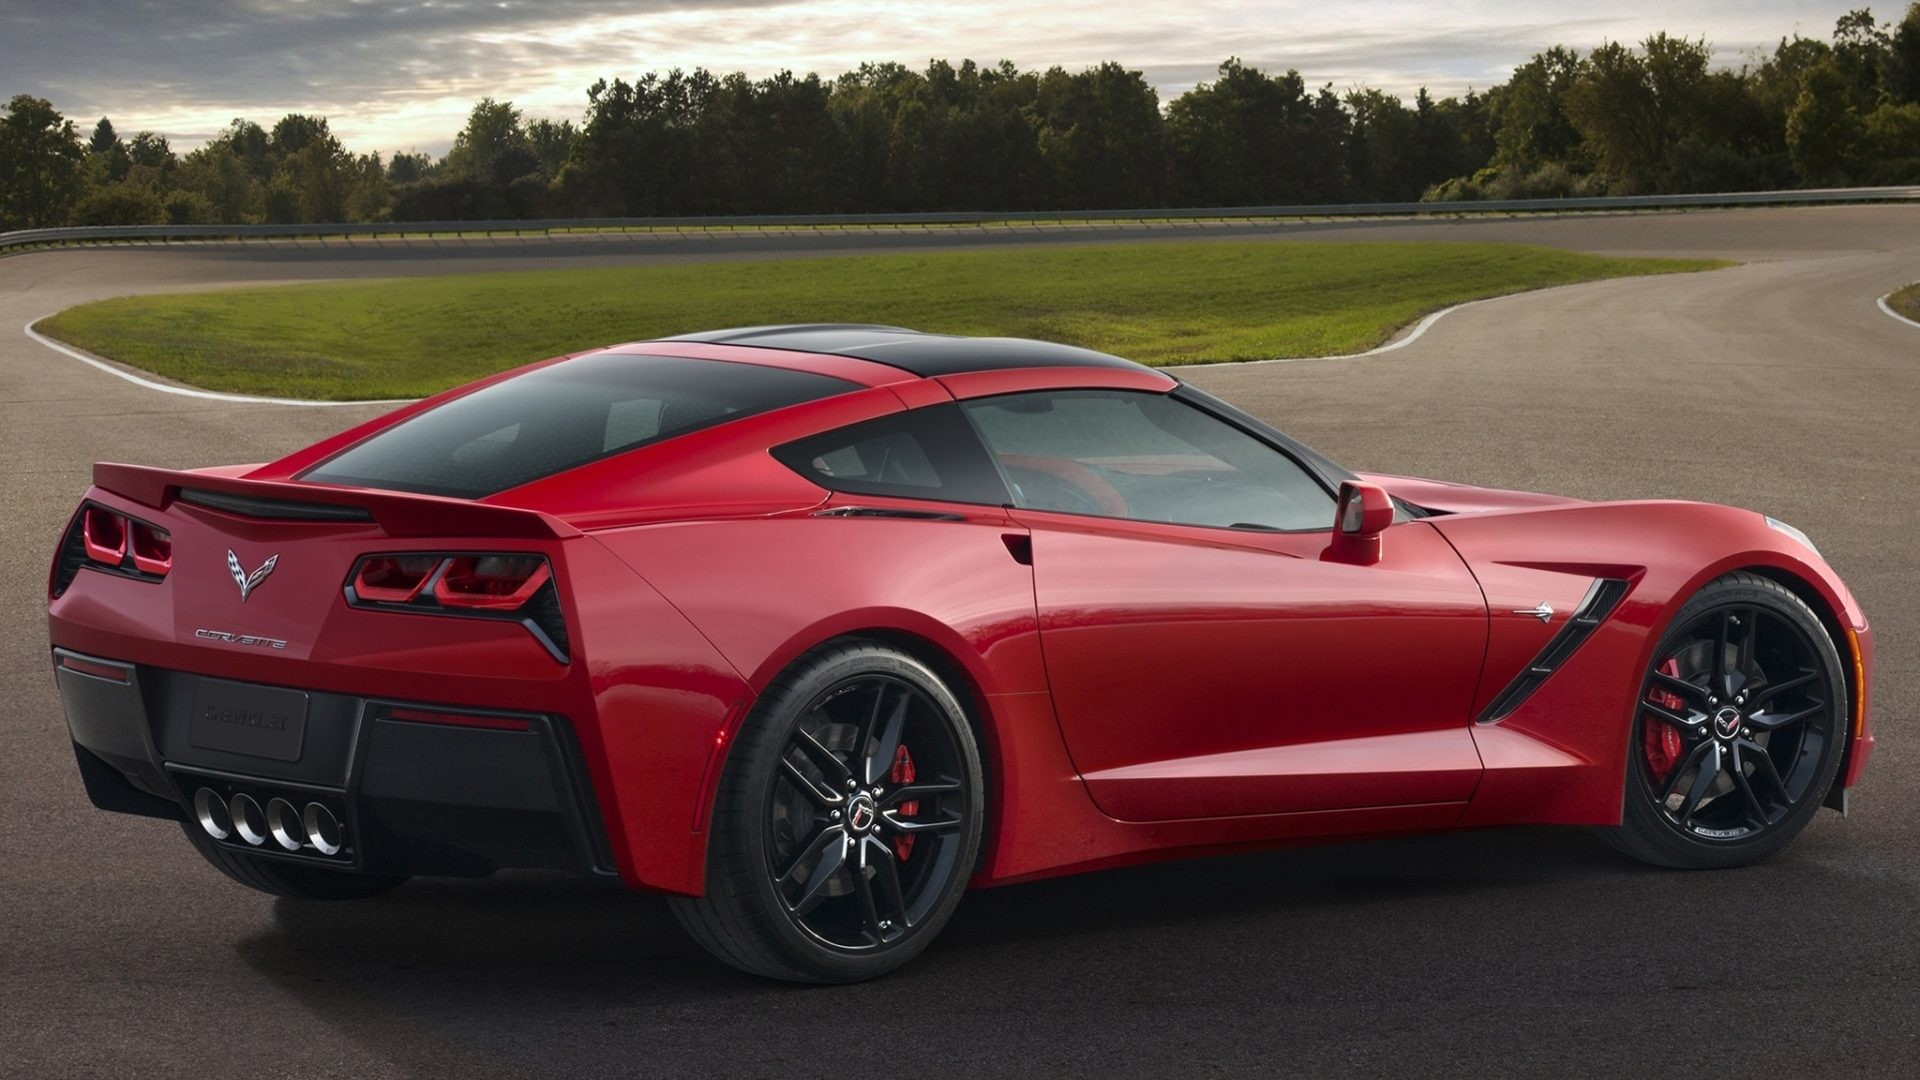 1920x1080 Chevrolet Corvette Wallpapers, Cool Chevrolet Corvette Backgrounds .